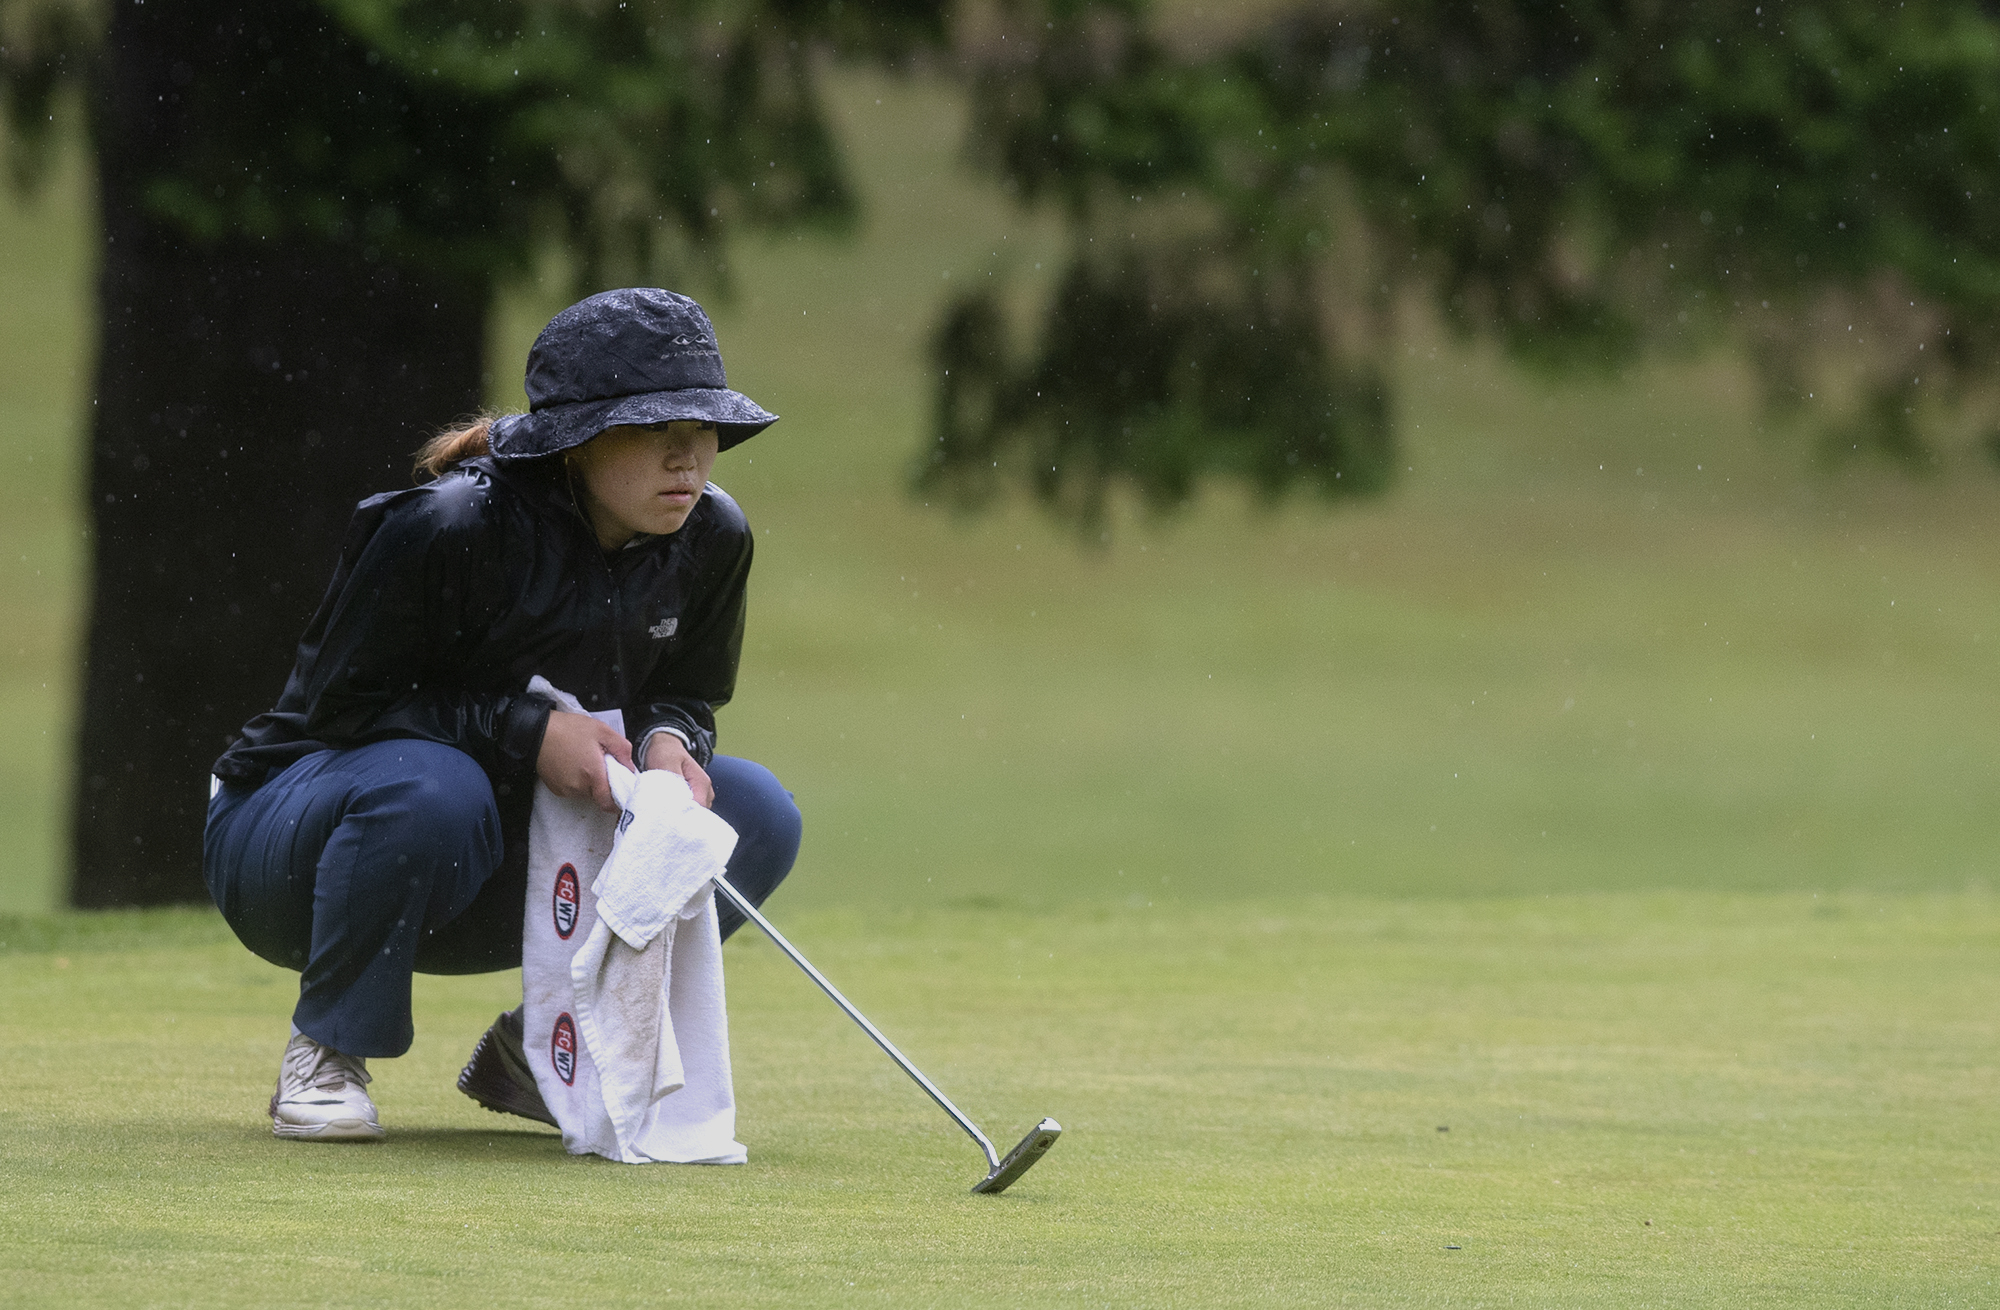 Union's Jade Gruher reads a putt on the 11th hole in the 4A/3A district girls golf championships on Thursday, May 27, 2021, at Lewis River Golf Course in Woodland. Union sophomore Jade Gruher won the 4A title with a 76-77-185 total over two days. Kelso senior Liz Dolan scored a 74-80-186 to win the 3A title.